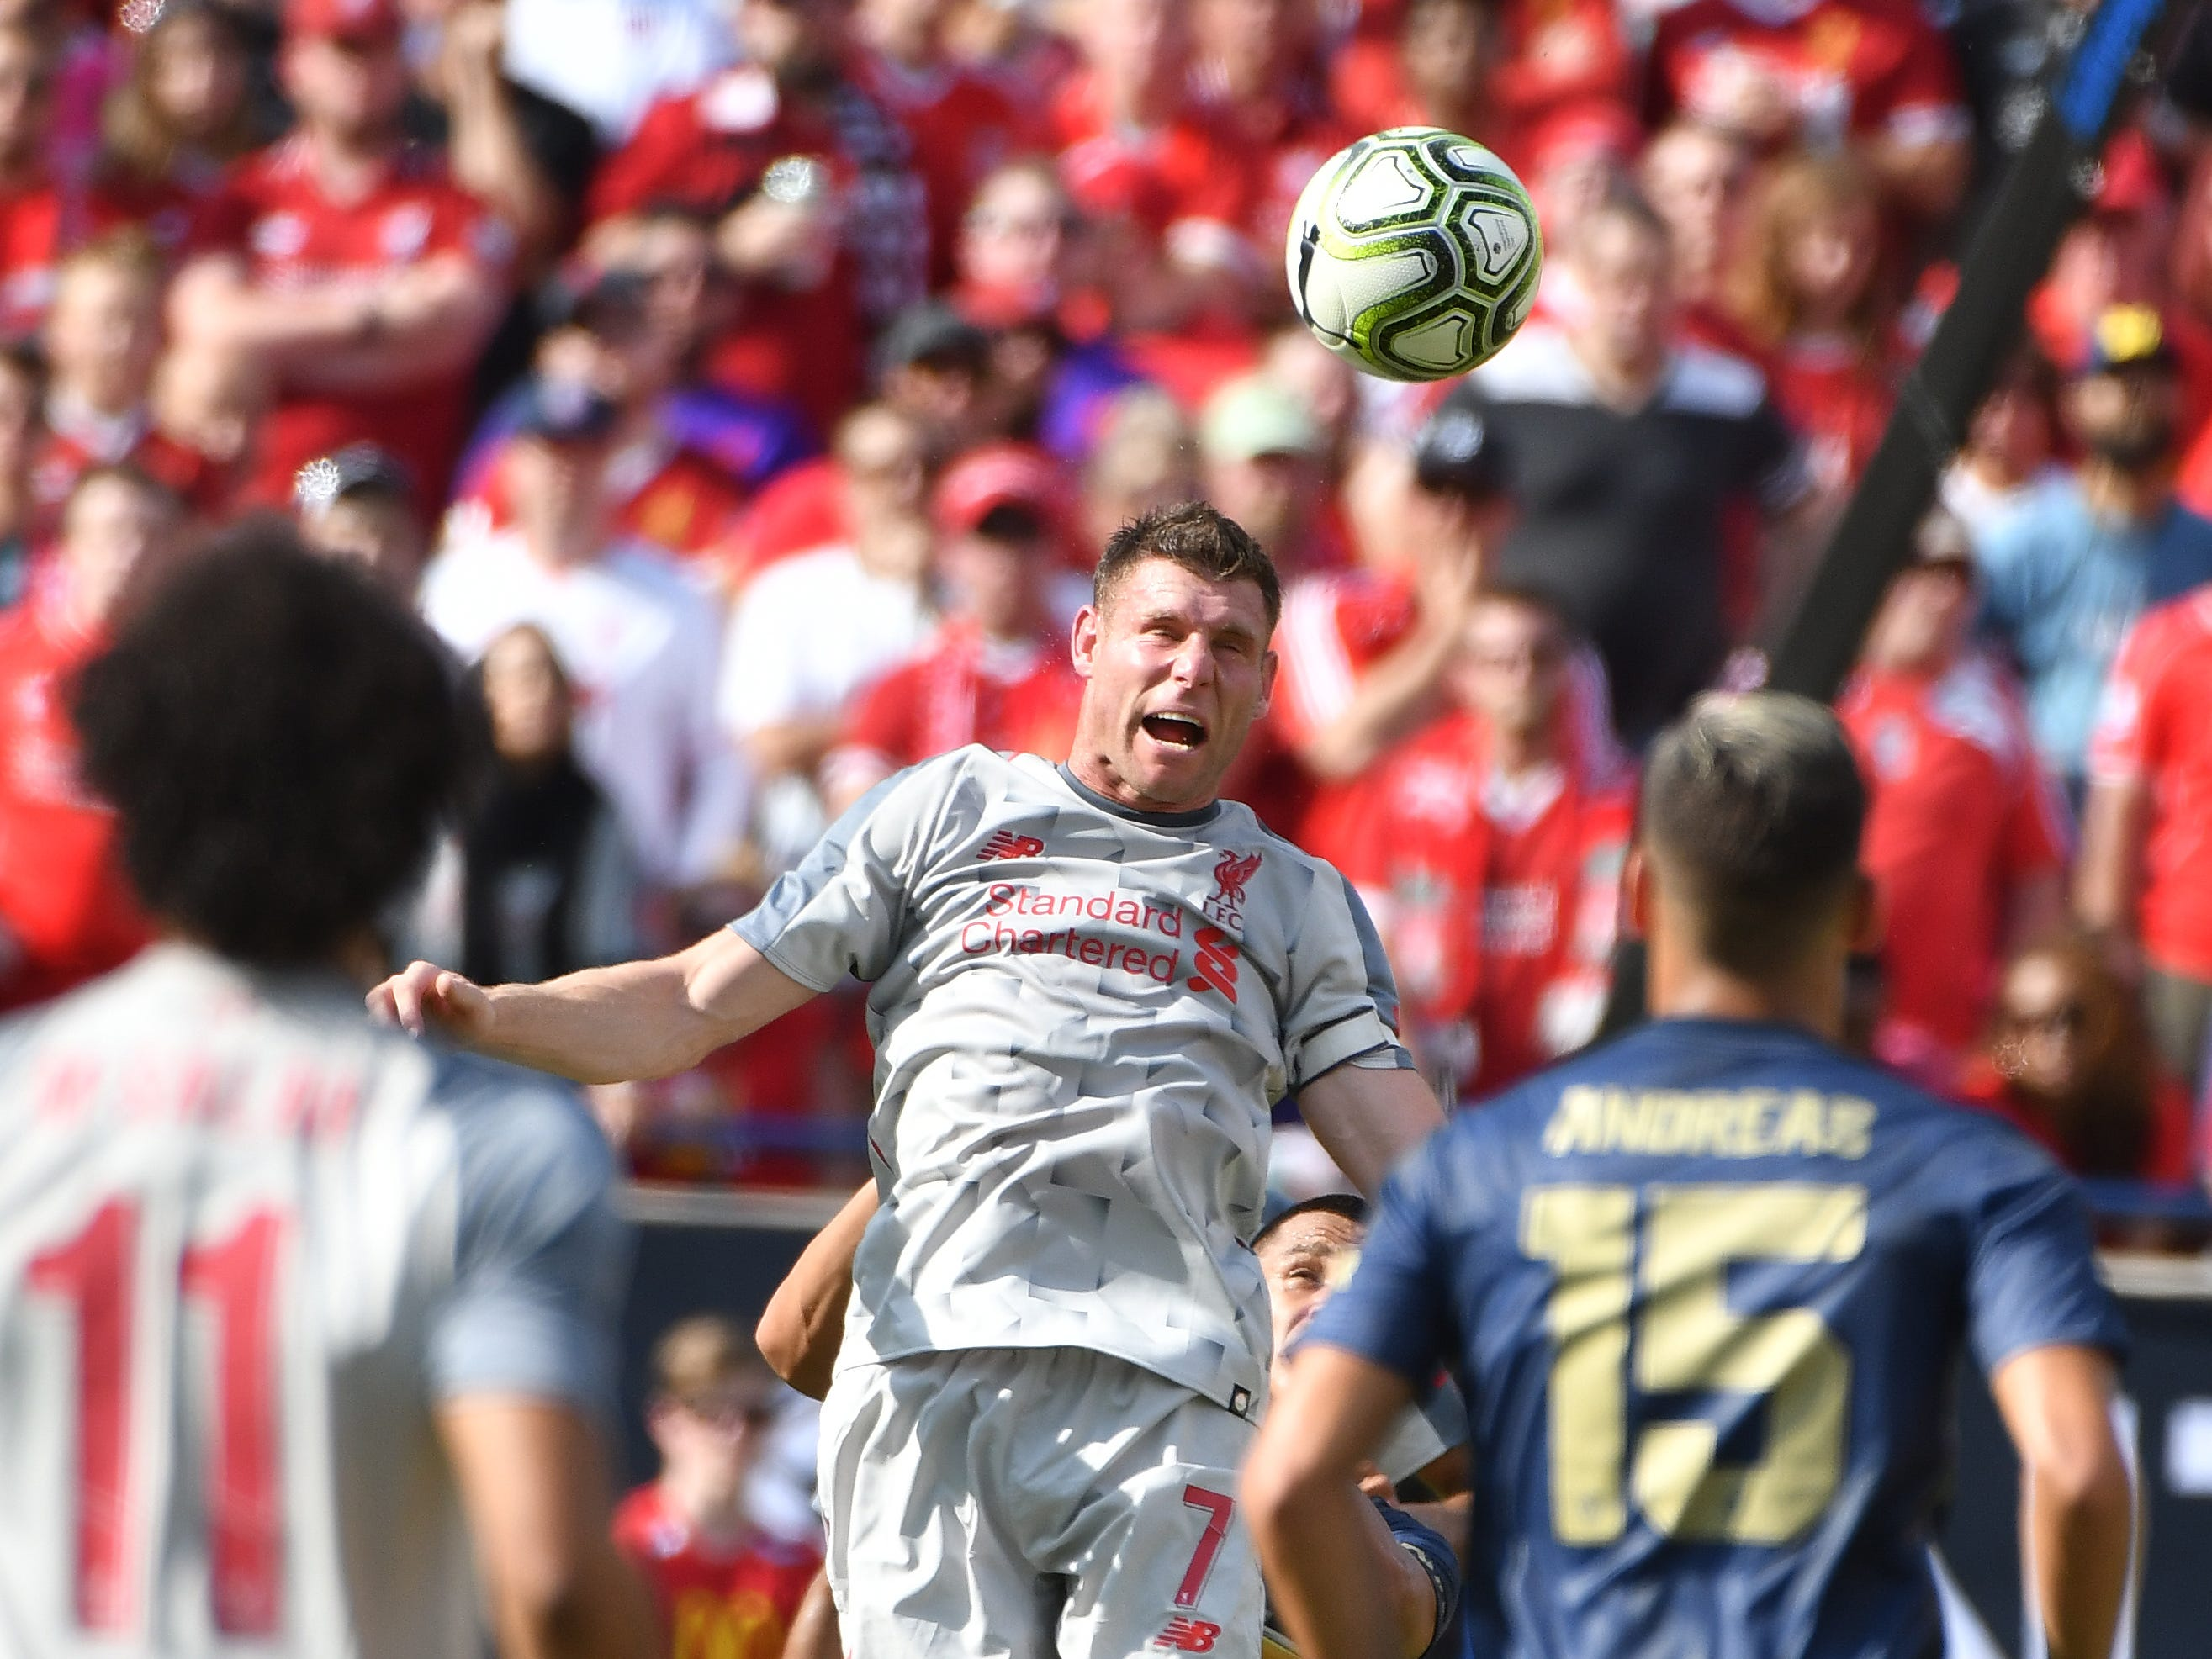 Liverpool's James Milner heads a ball bak up field in the first half.